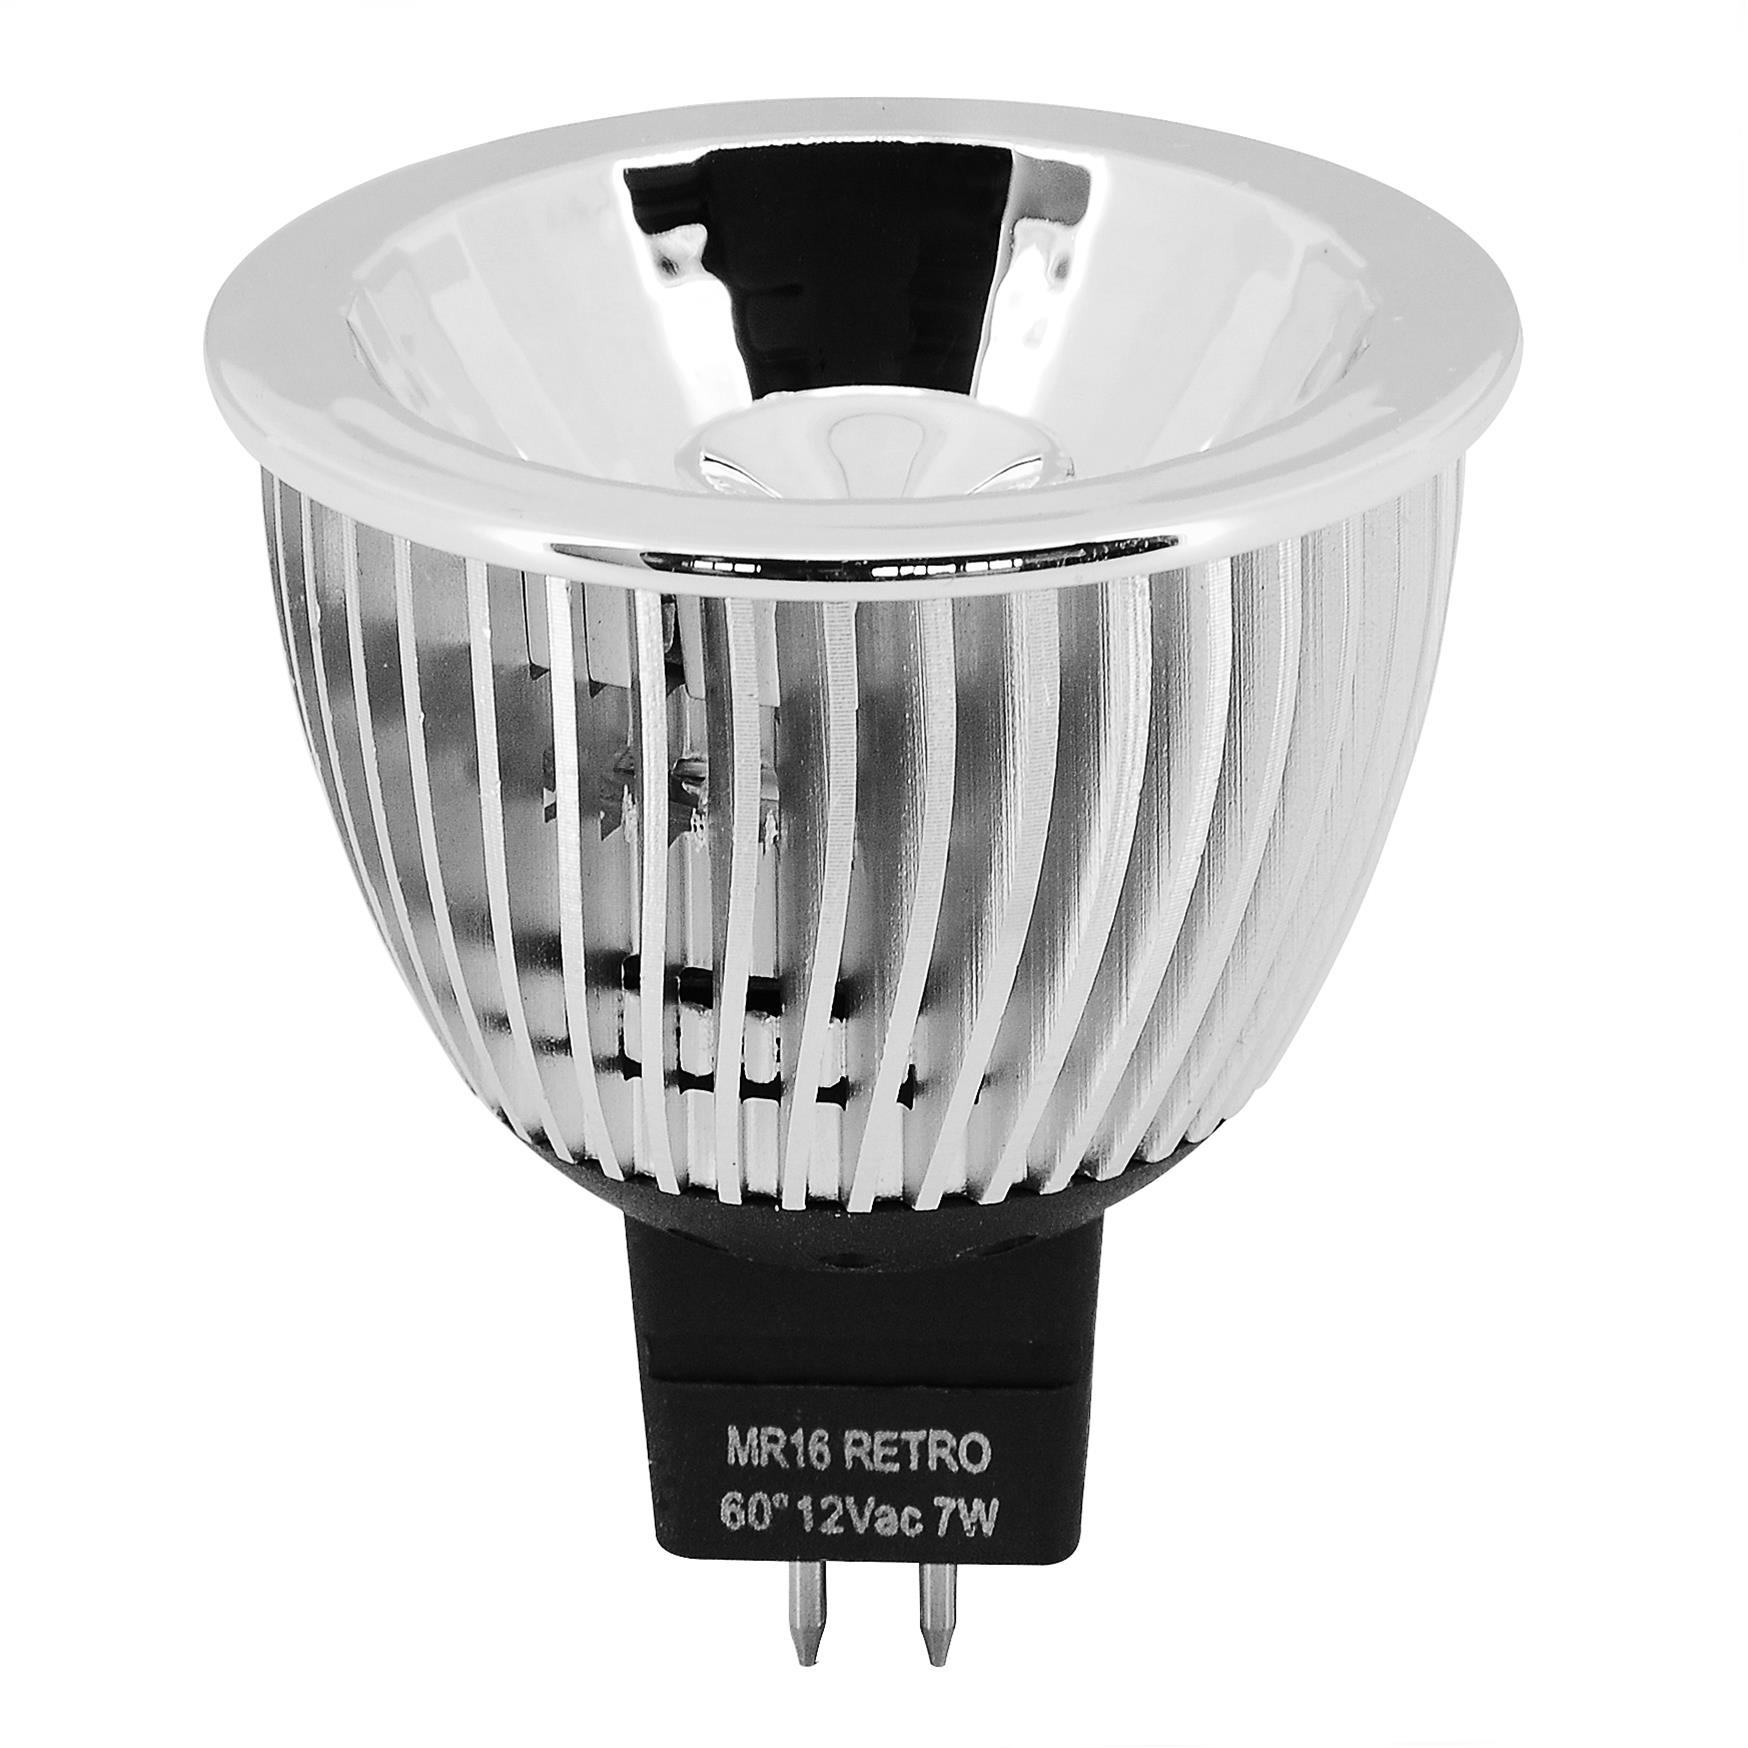 Mr16 Dimmable Led Uk: MR16 LED 7W 630lm 12V (=75W) Non Dimmable 60° 4000K Cool